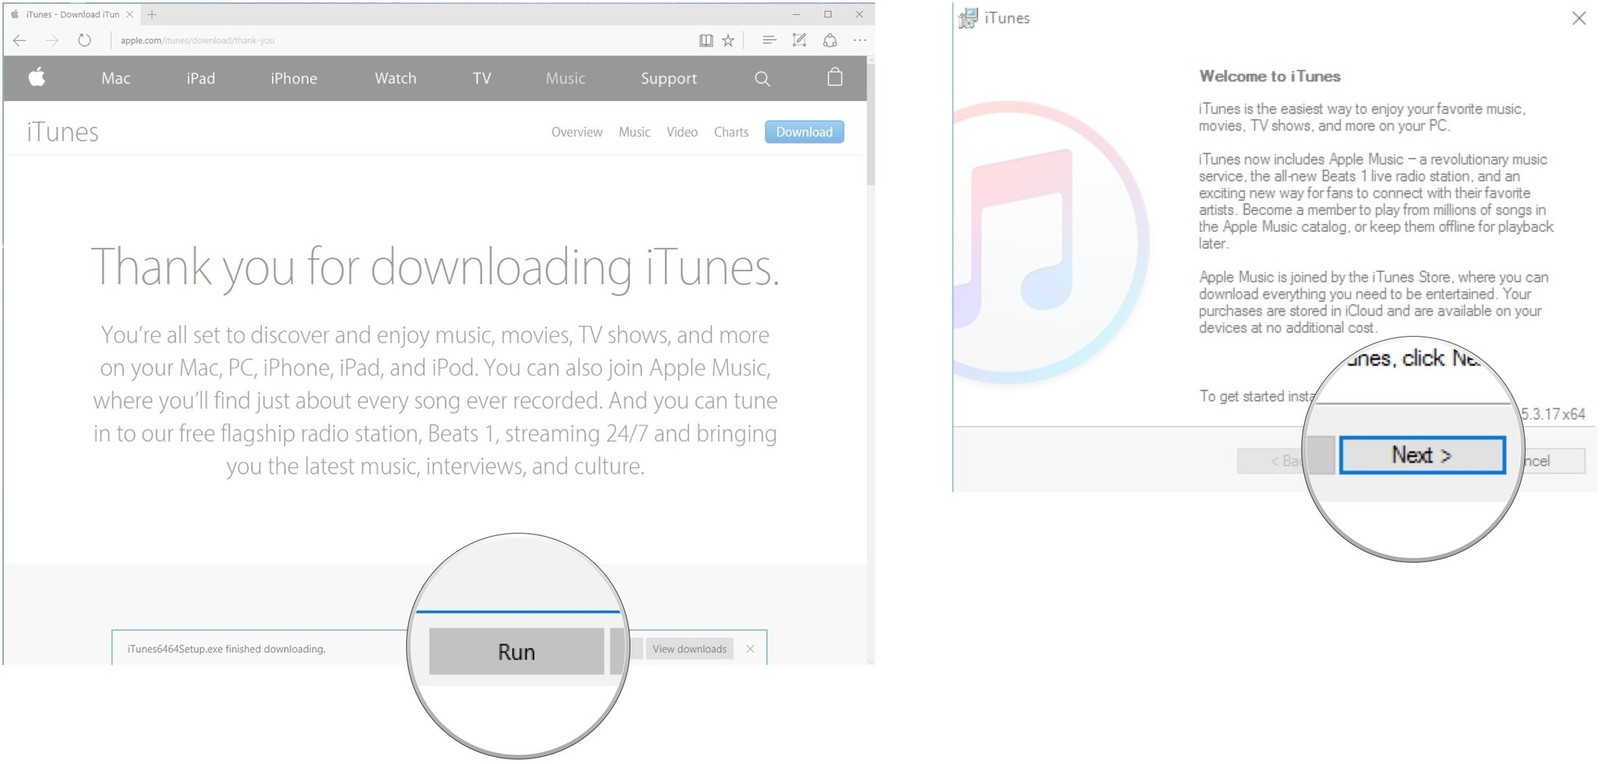 How to uninstall an older version of iTunes